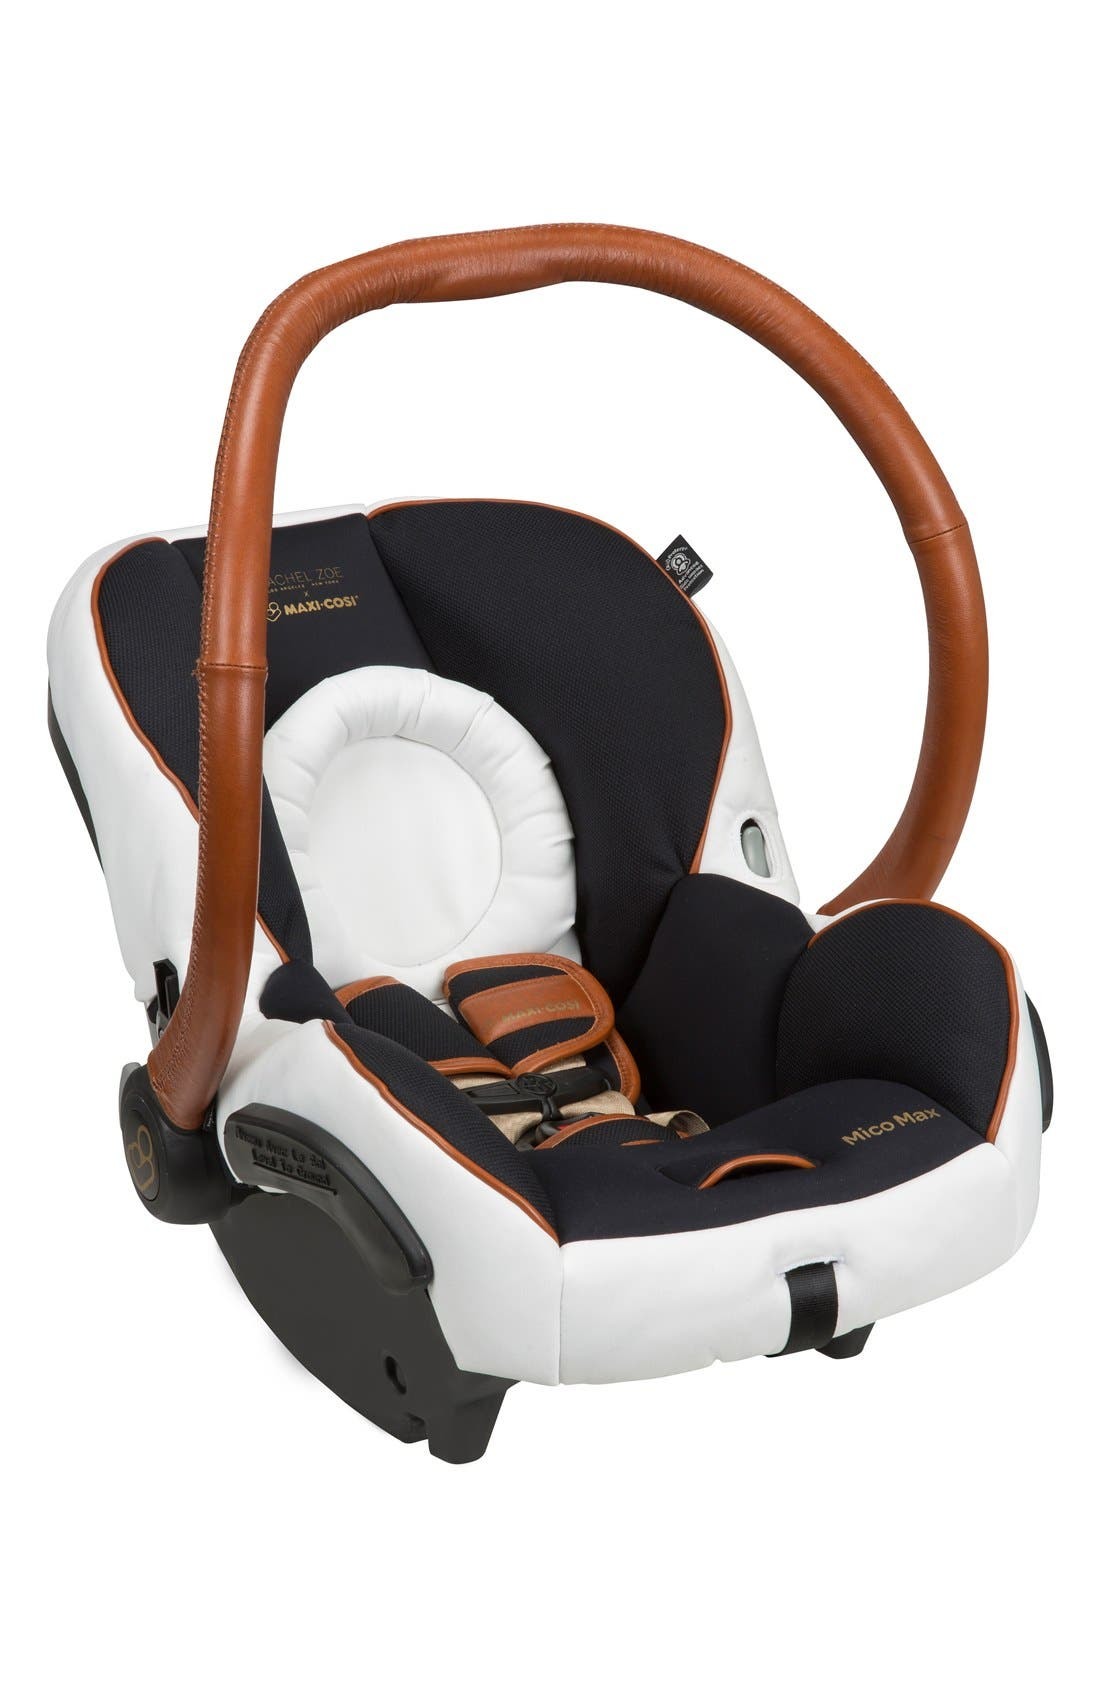 x Rachel Zoe Mico Max 30 - Special Edition Infant Car Seat,                         Main,                         color, Black/ White